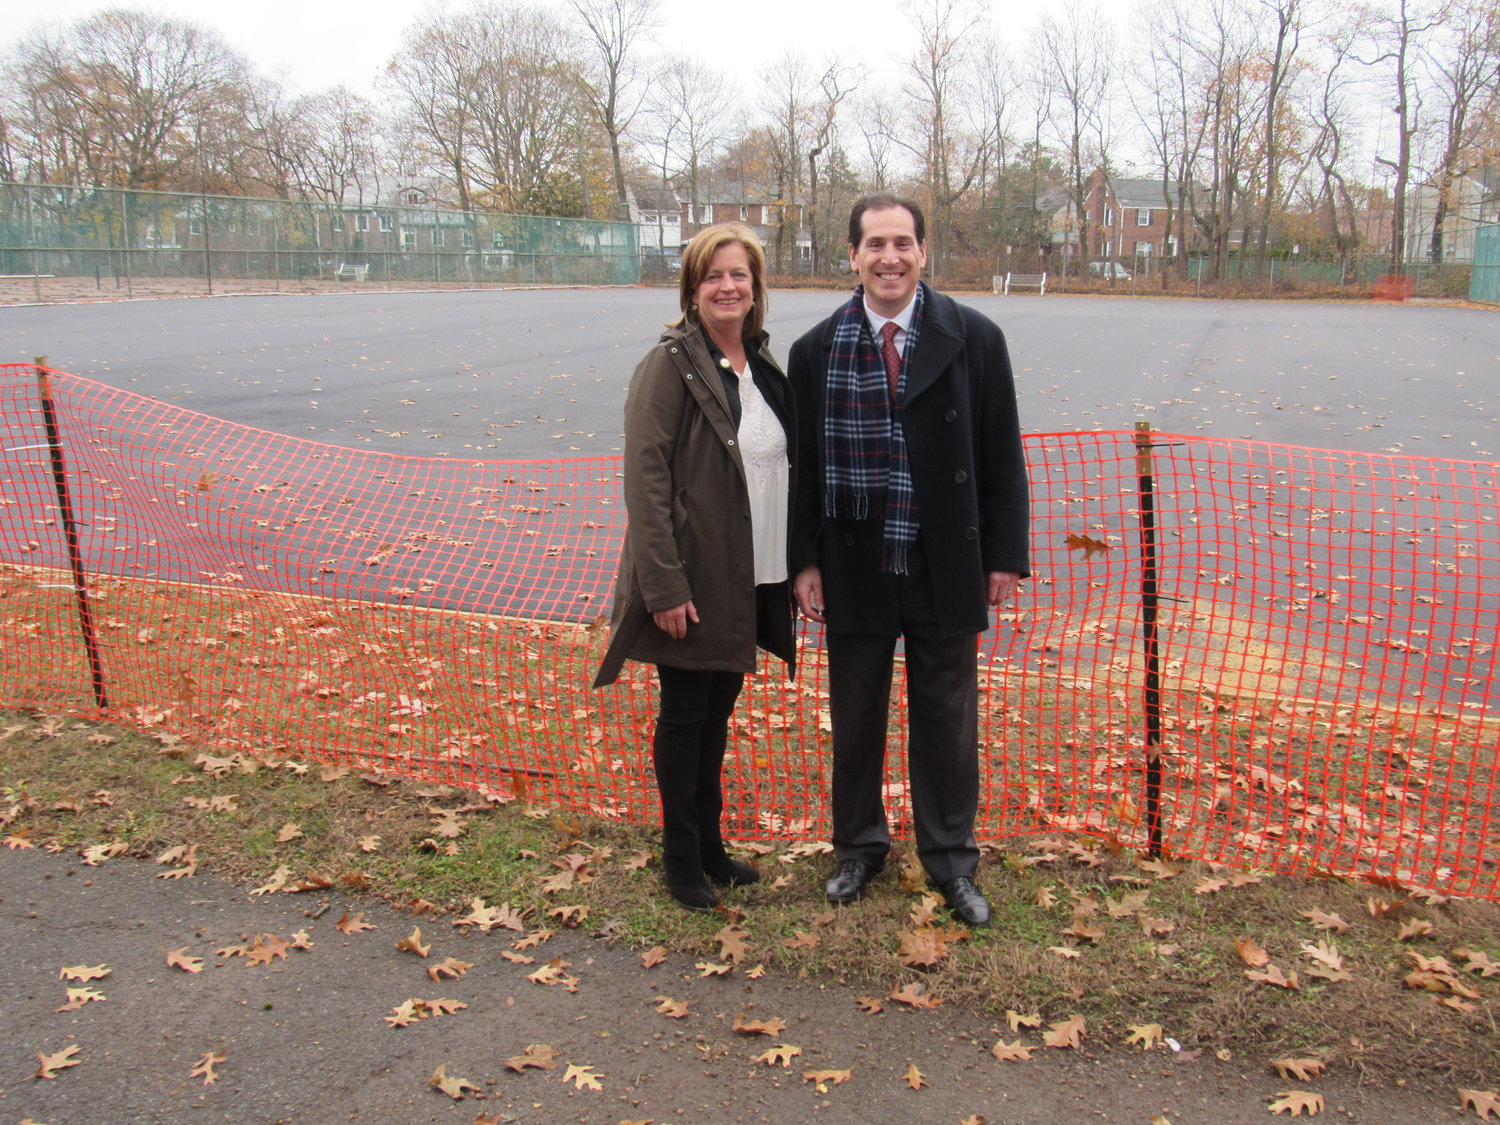 State Assemblywoman Judy Griffin and State Sen. Todd Kaminsky urged the state's Office of Parks, Recreation and Historic Preservation to repair the tennis courts at Hempstead Lake State Park.